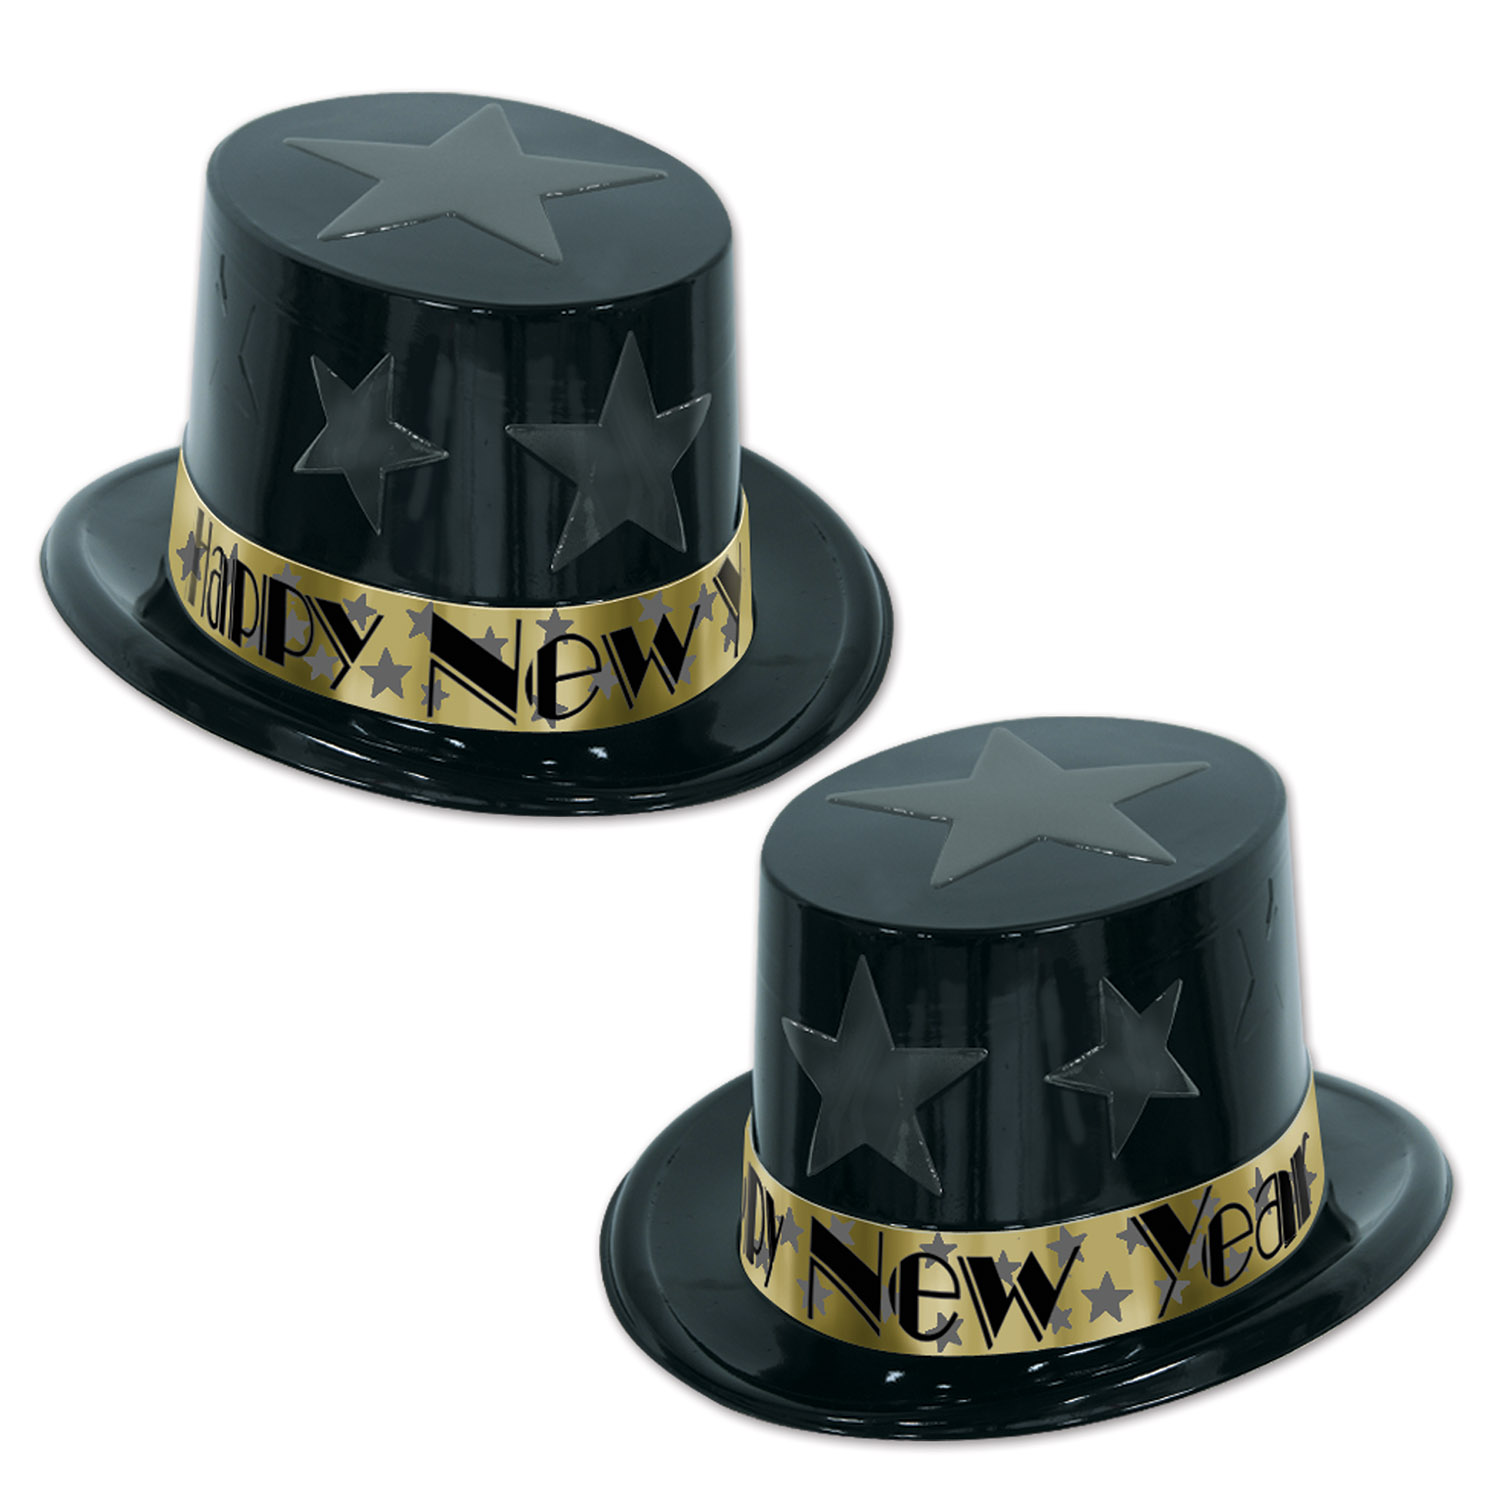 New Year Star Topper black & gold